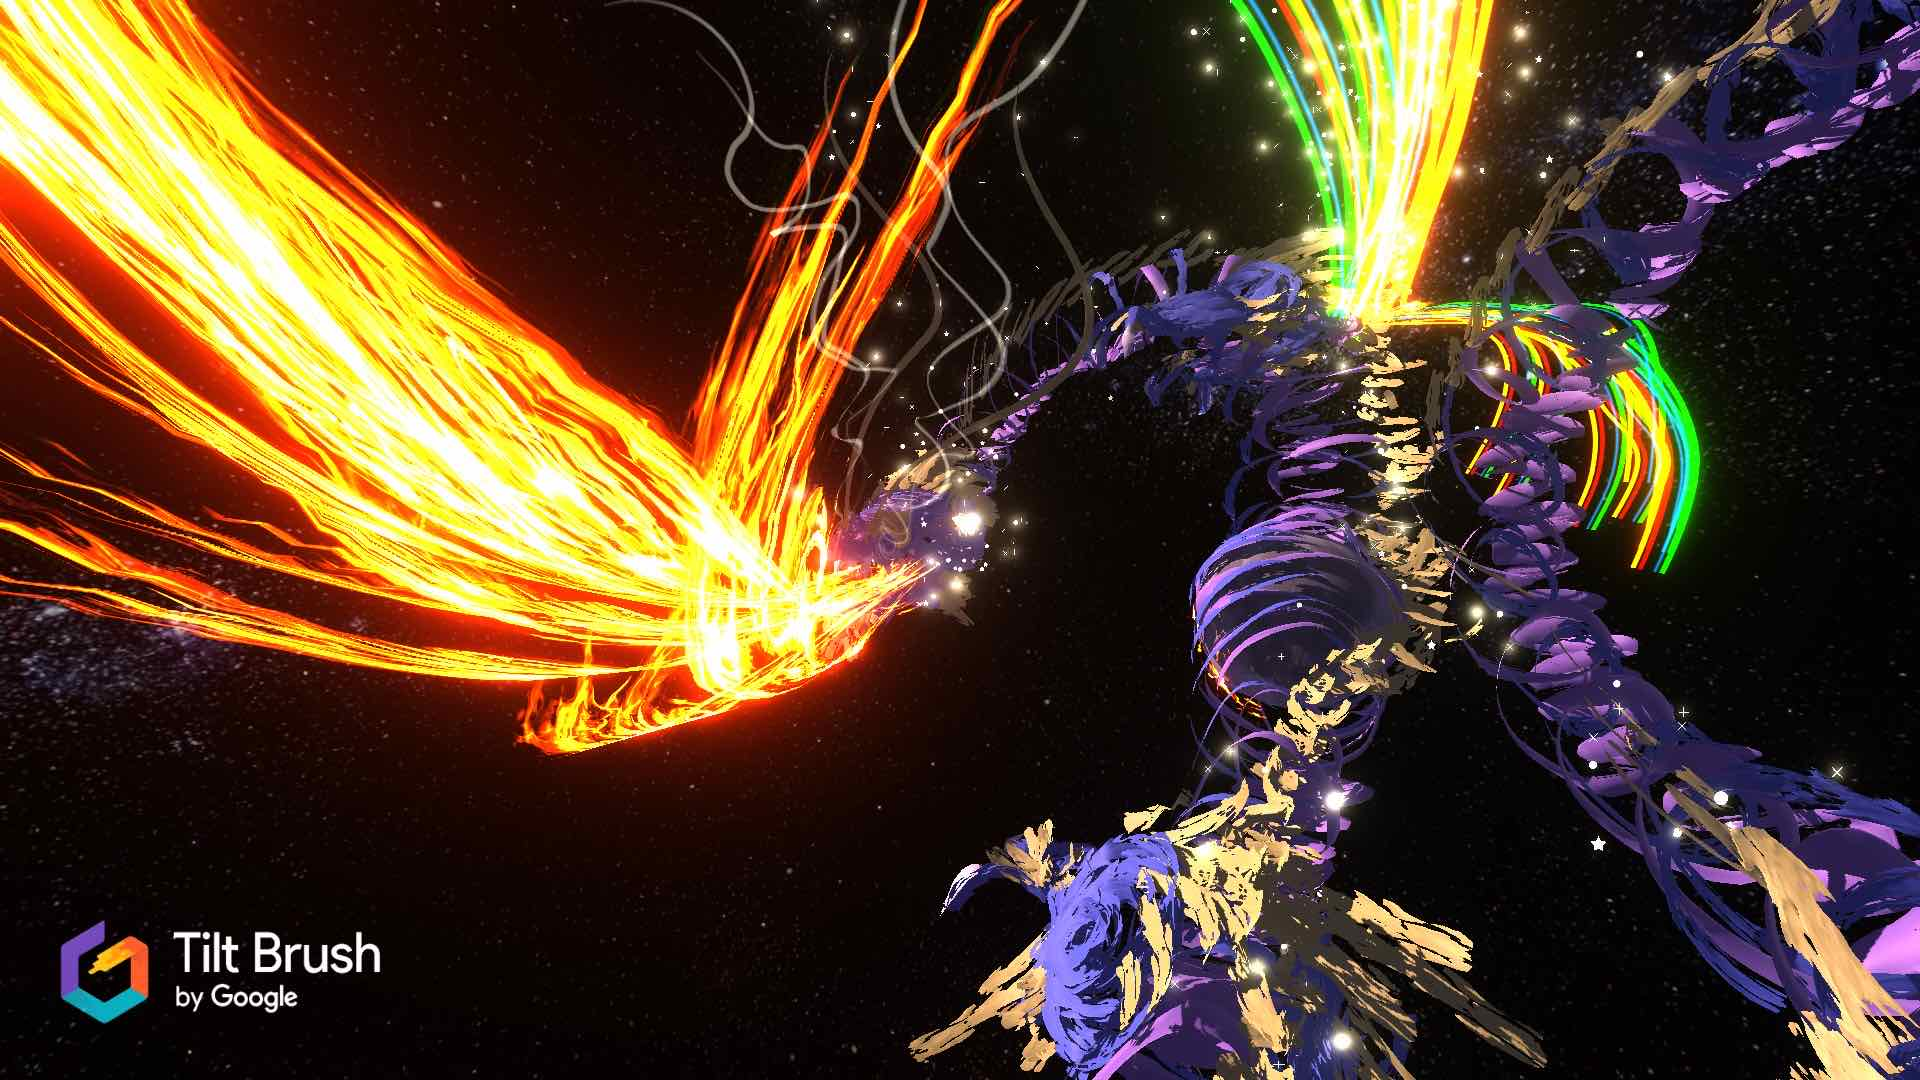 Tilt Brush HTC Vive